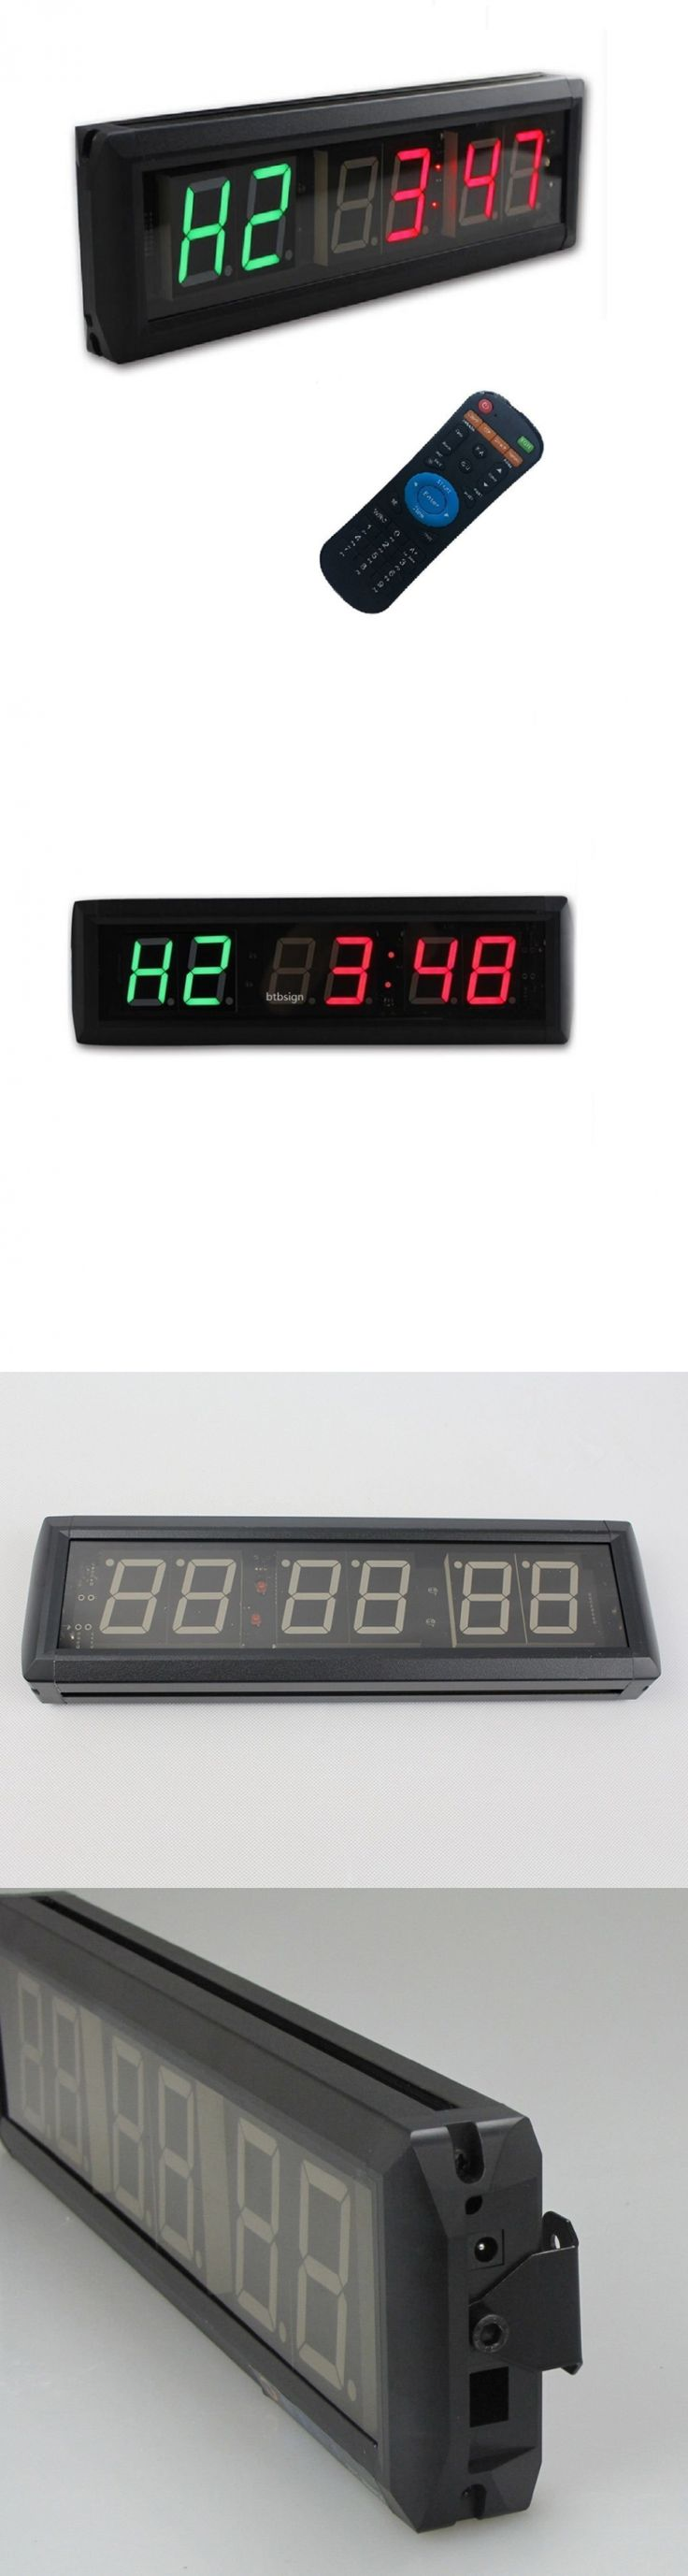 Stopwatches 166149: Green Led Countdown Interval Wall Clock For Garage Tabata Emom Training -> BUY IT NOW ONLY: $102.62 on eBay!